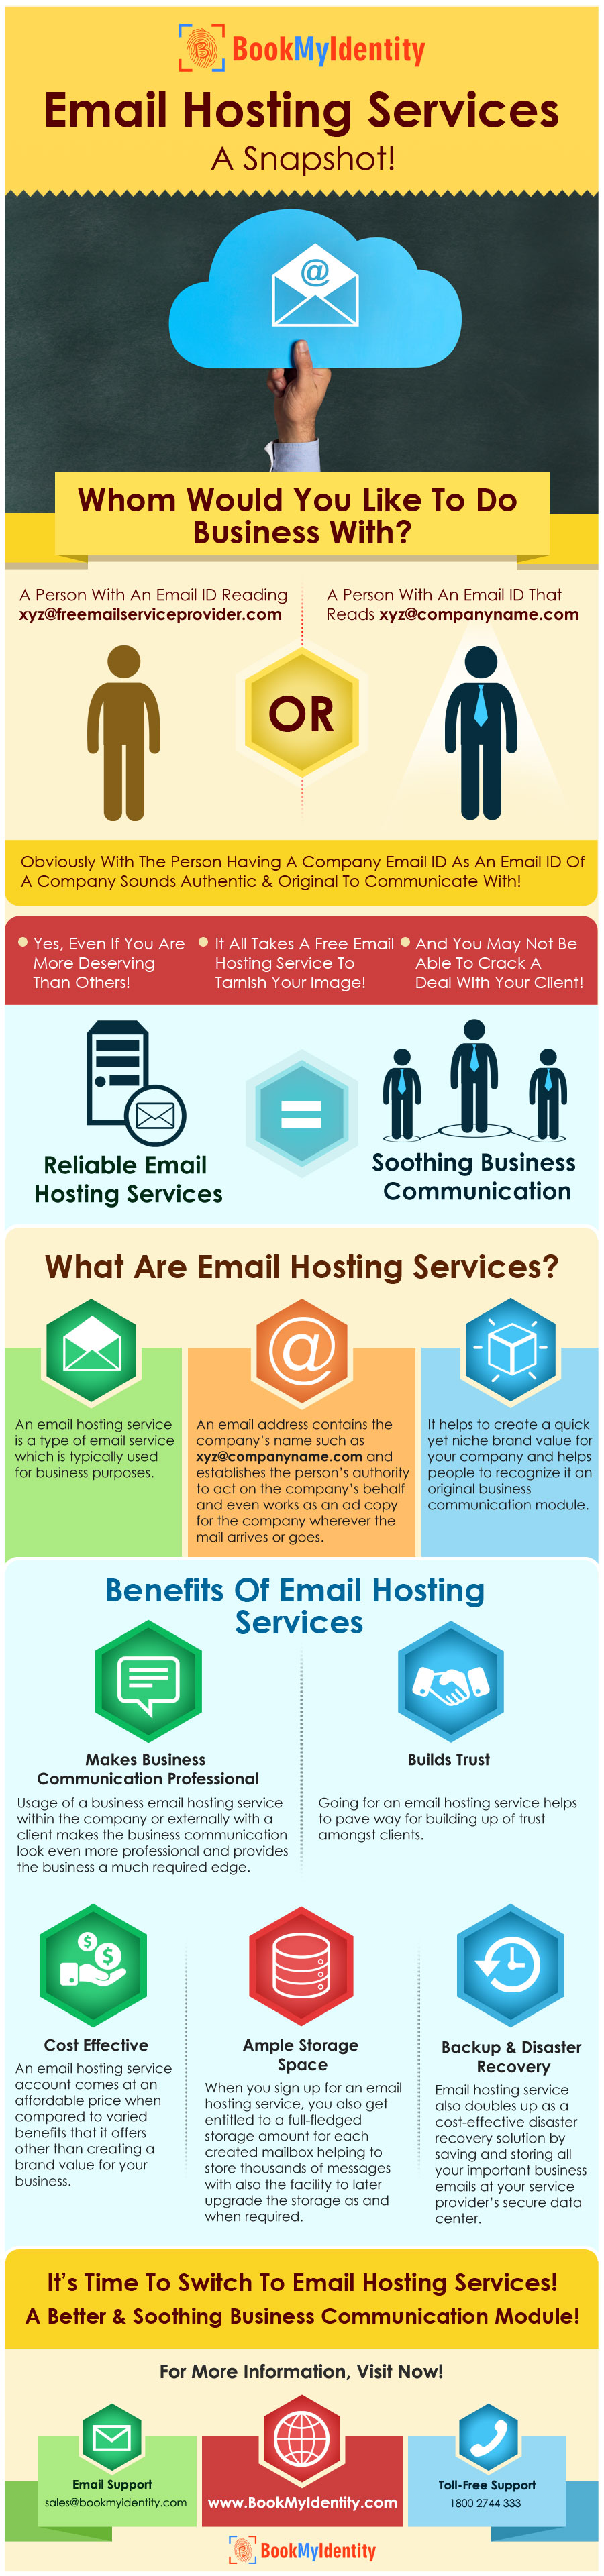 What Is Email Hosting - A Short Guide! - Book My Identity Blog